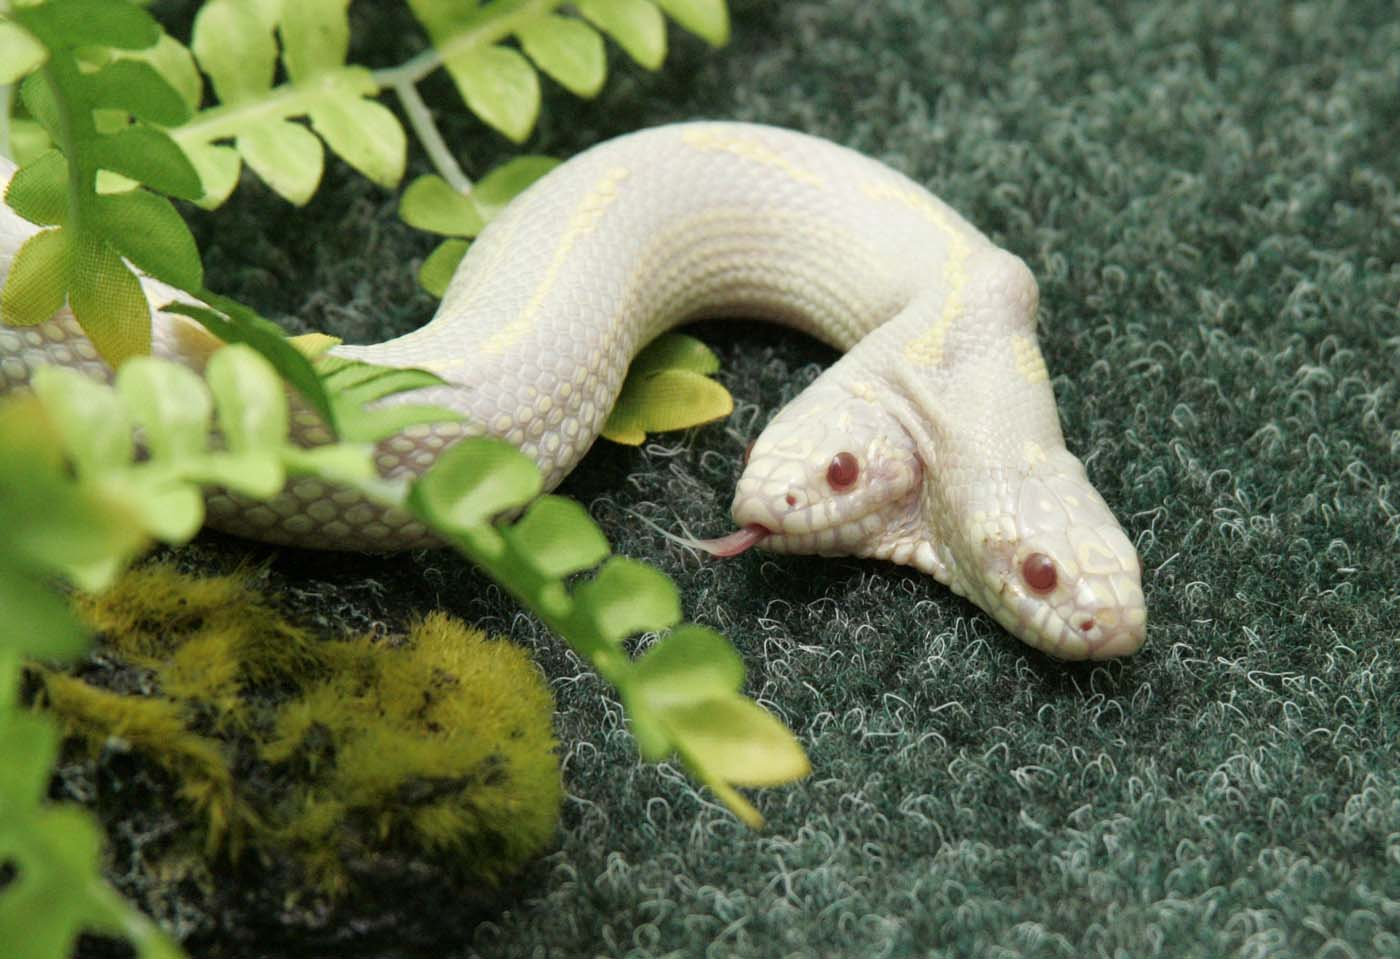 A rare two-headed snake explores its surroundings in a private zoo in the Crimean town of Yalta July 8, 2011. The three-year-old snake was brought from a zoo in Switzerland where it was born. (Stringer/Reuters)